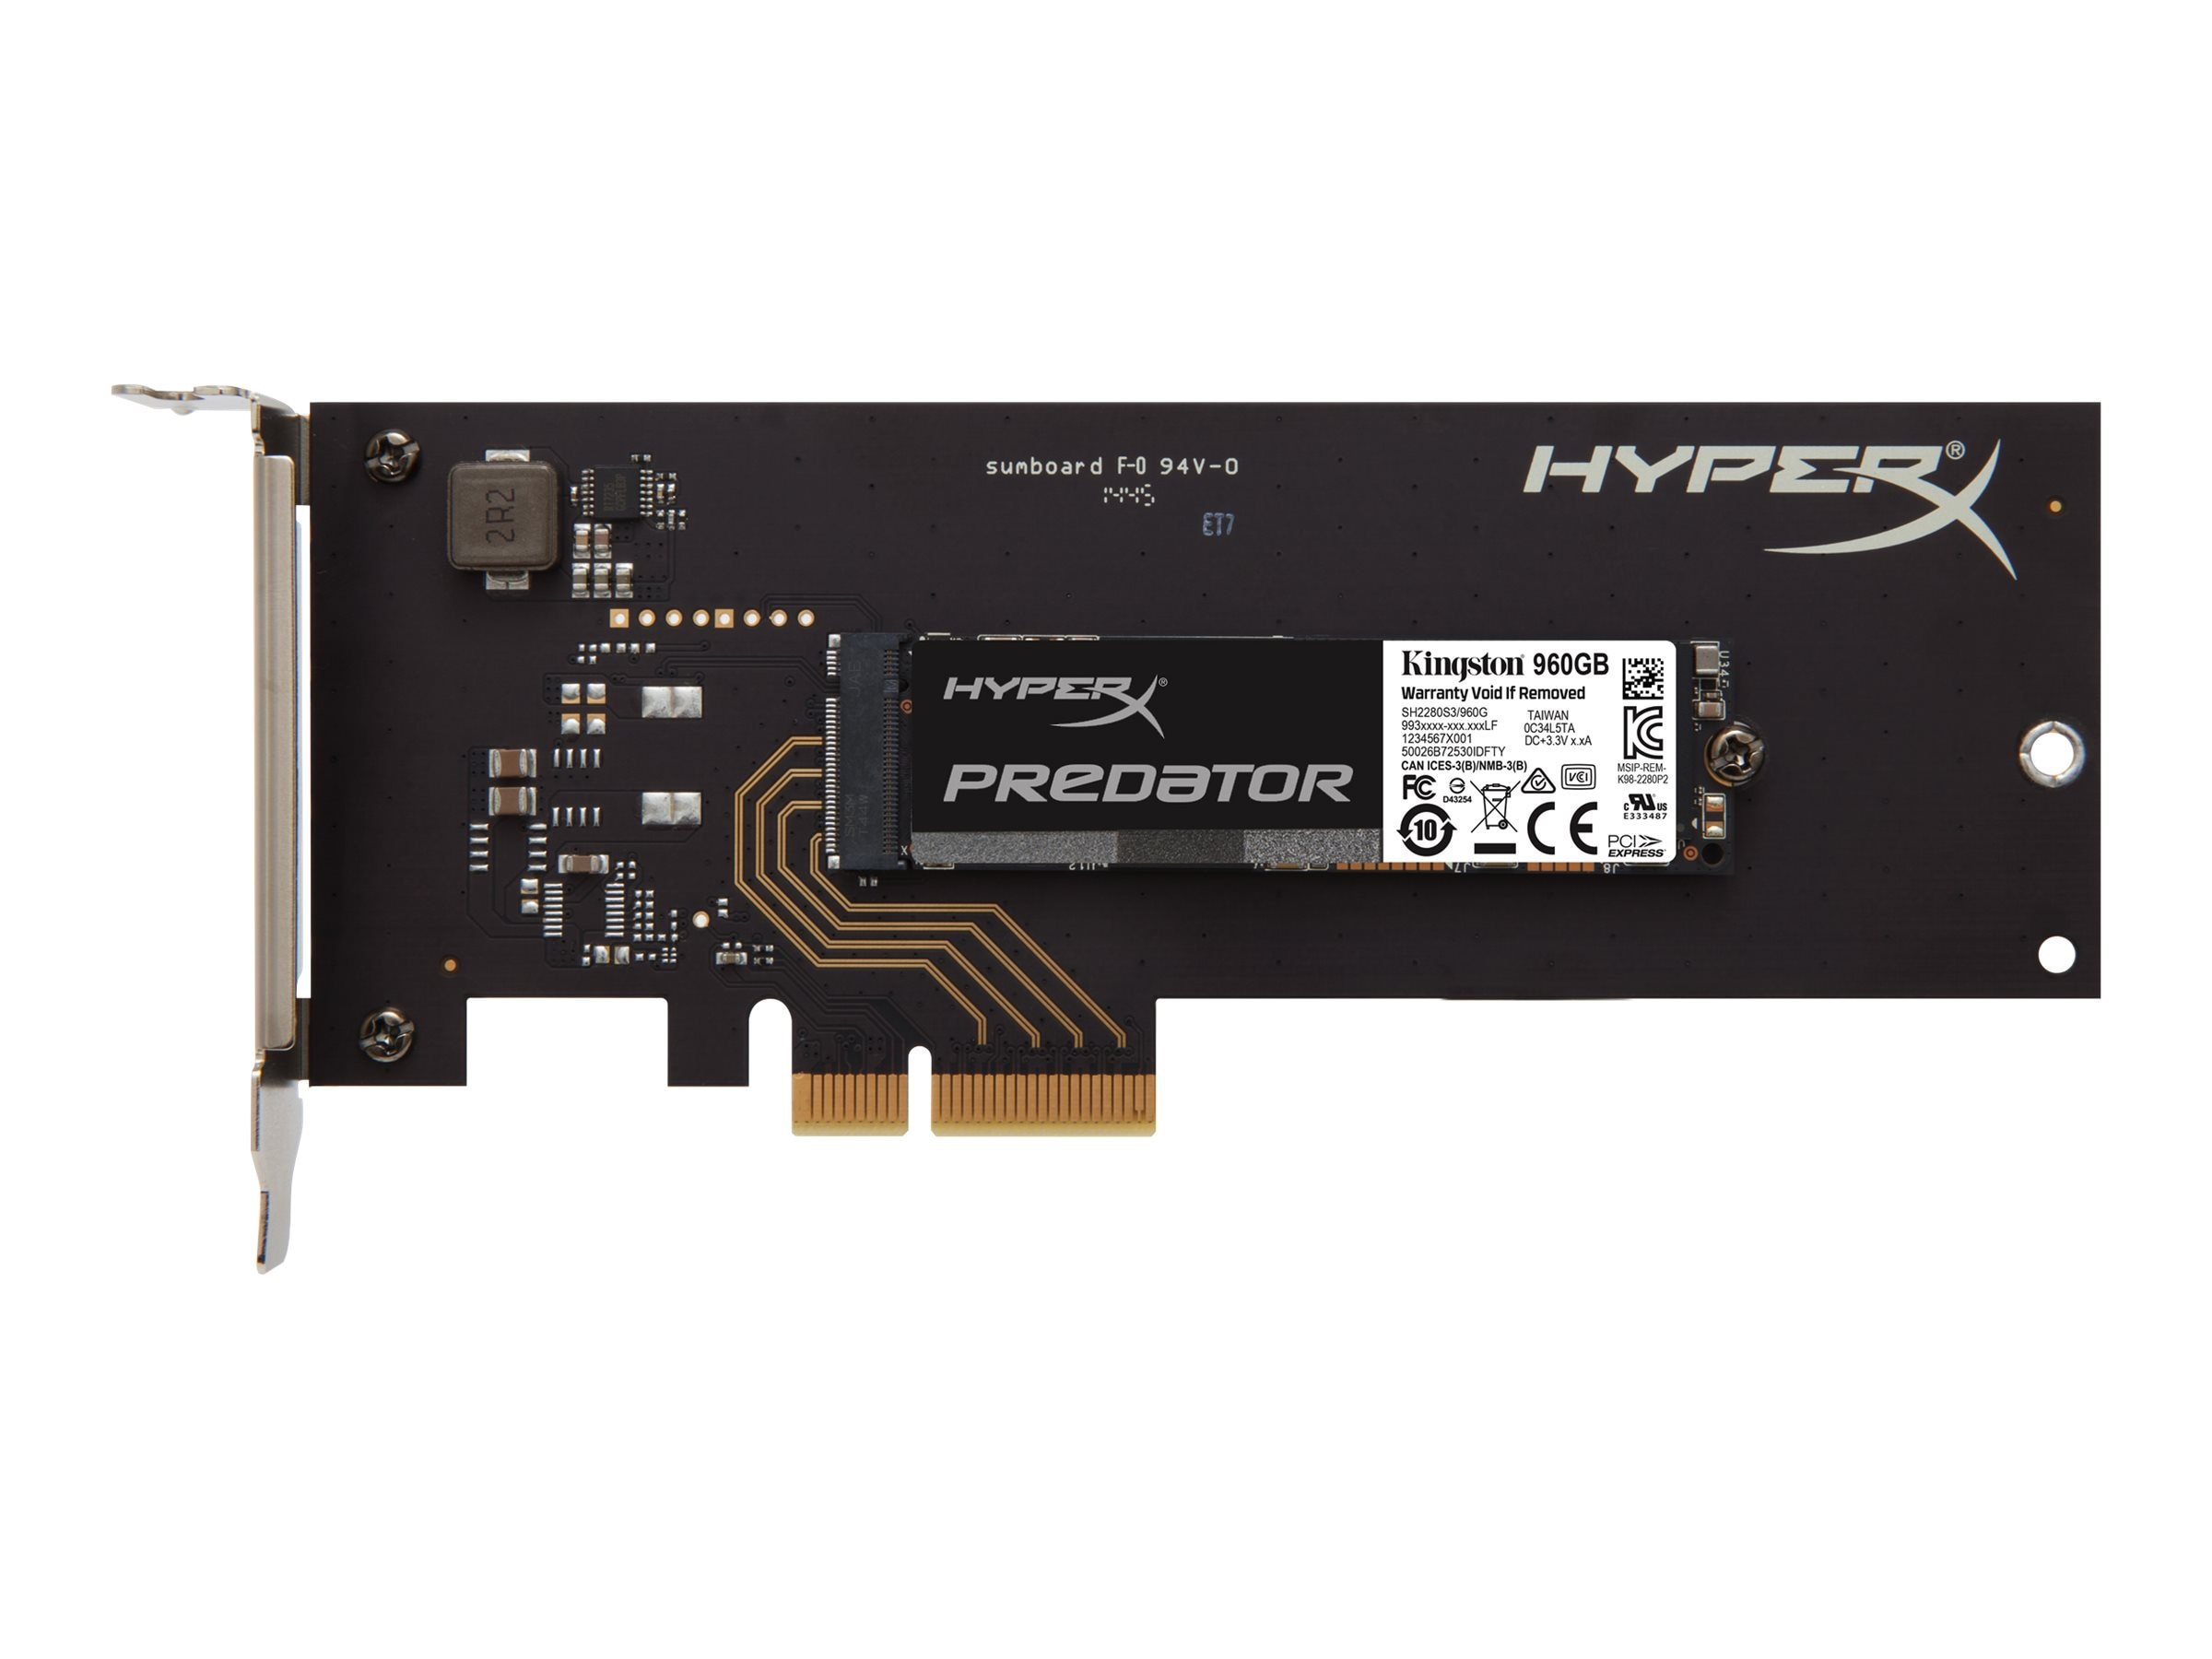 Kingston SHPM2280P2H/960G Image 1